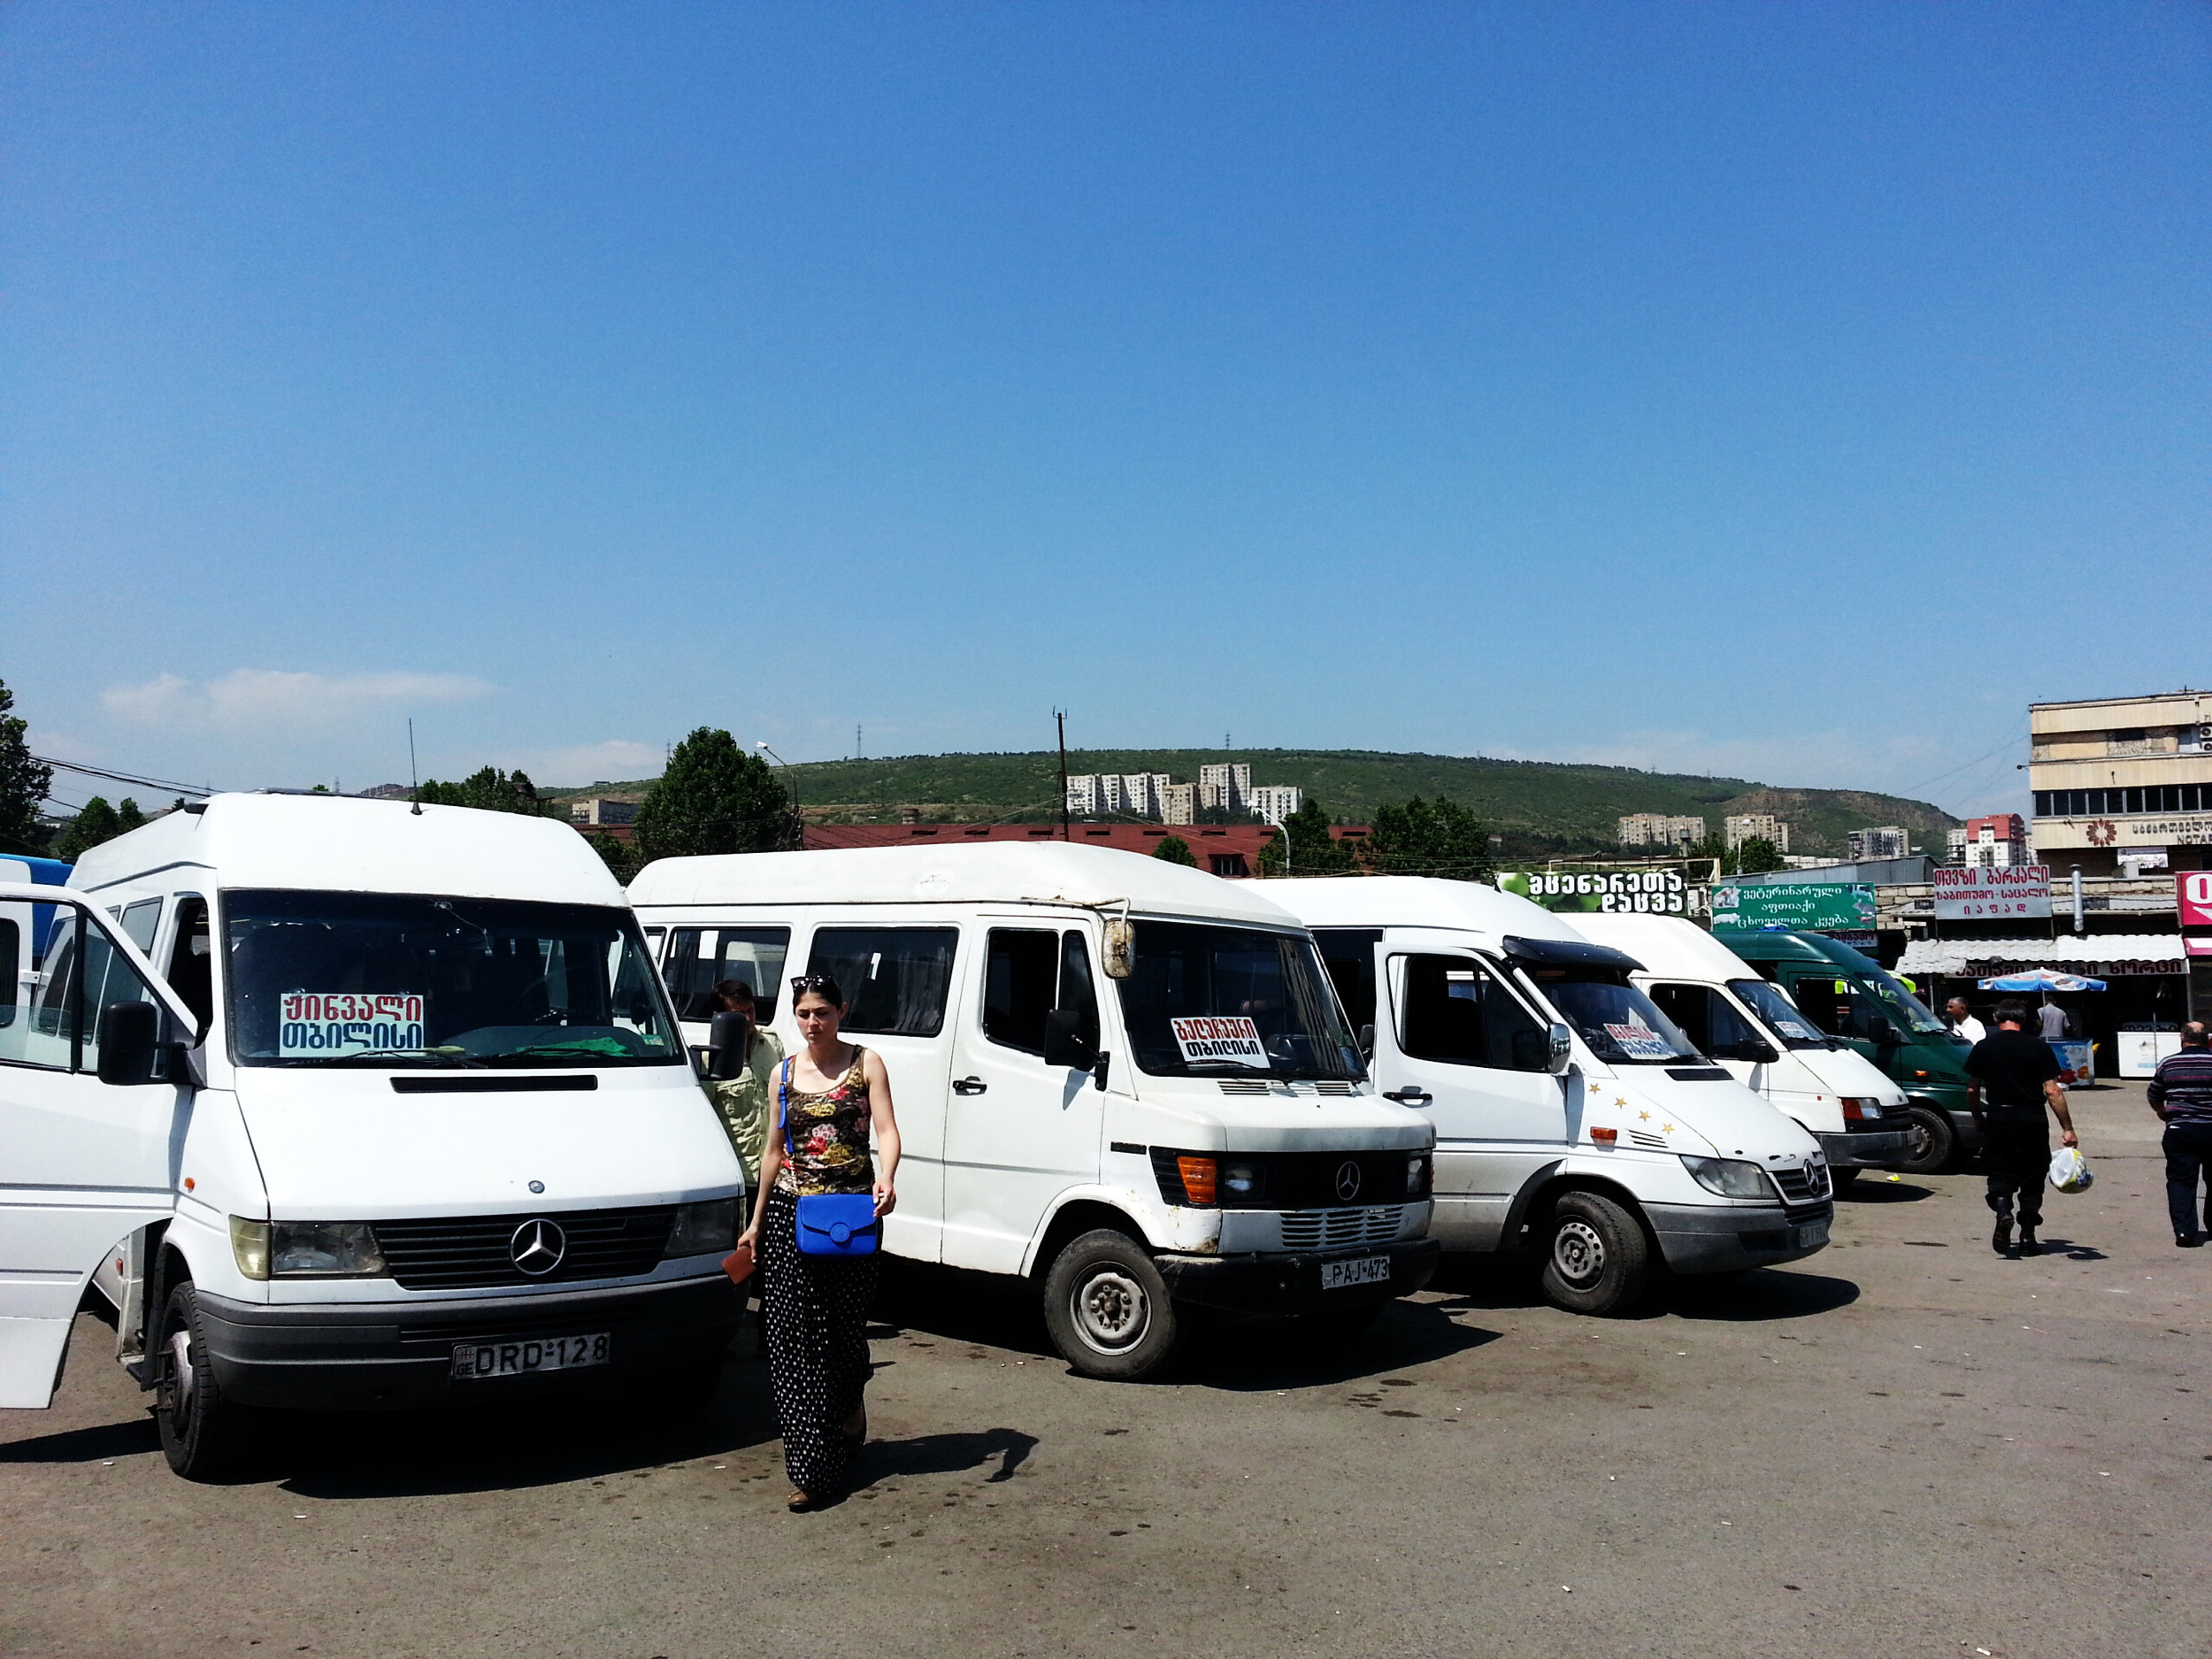 Tbilisi,Didube bus station.  Minibuses connect Tbilisi with surrounding villages and towns like Mtskheta and Gori and far away cities like Yerevan, Kutaisi and Batumi.